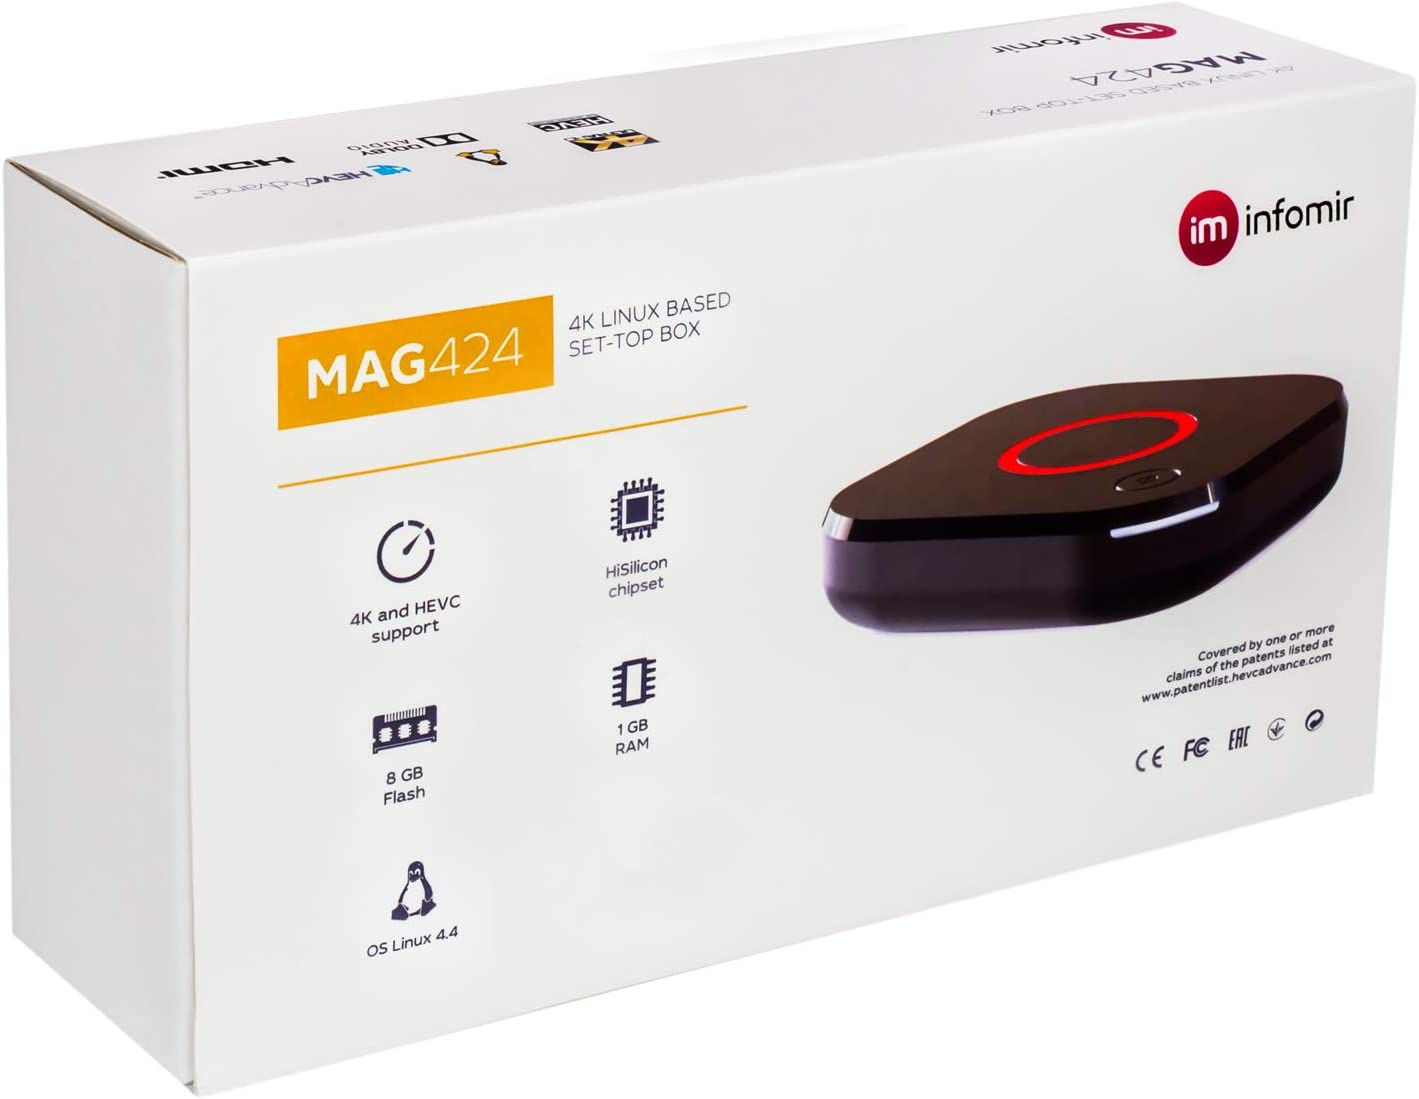 MAG 424 Original Infomir & HB-DIGITAL 4K IPTV Set Top Box Multimedia Player Internet TV IP Receptor # 4K UHD 60FPS 2160p@60 FPS HDMI 2.0 # HEVC H.256 Soportes # ARM Cortex-A53: